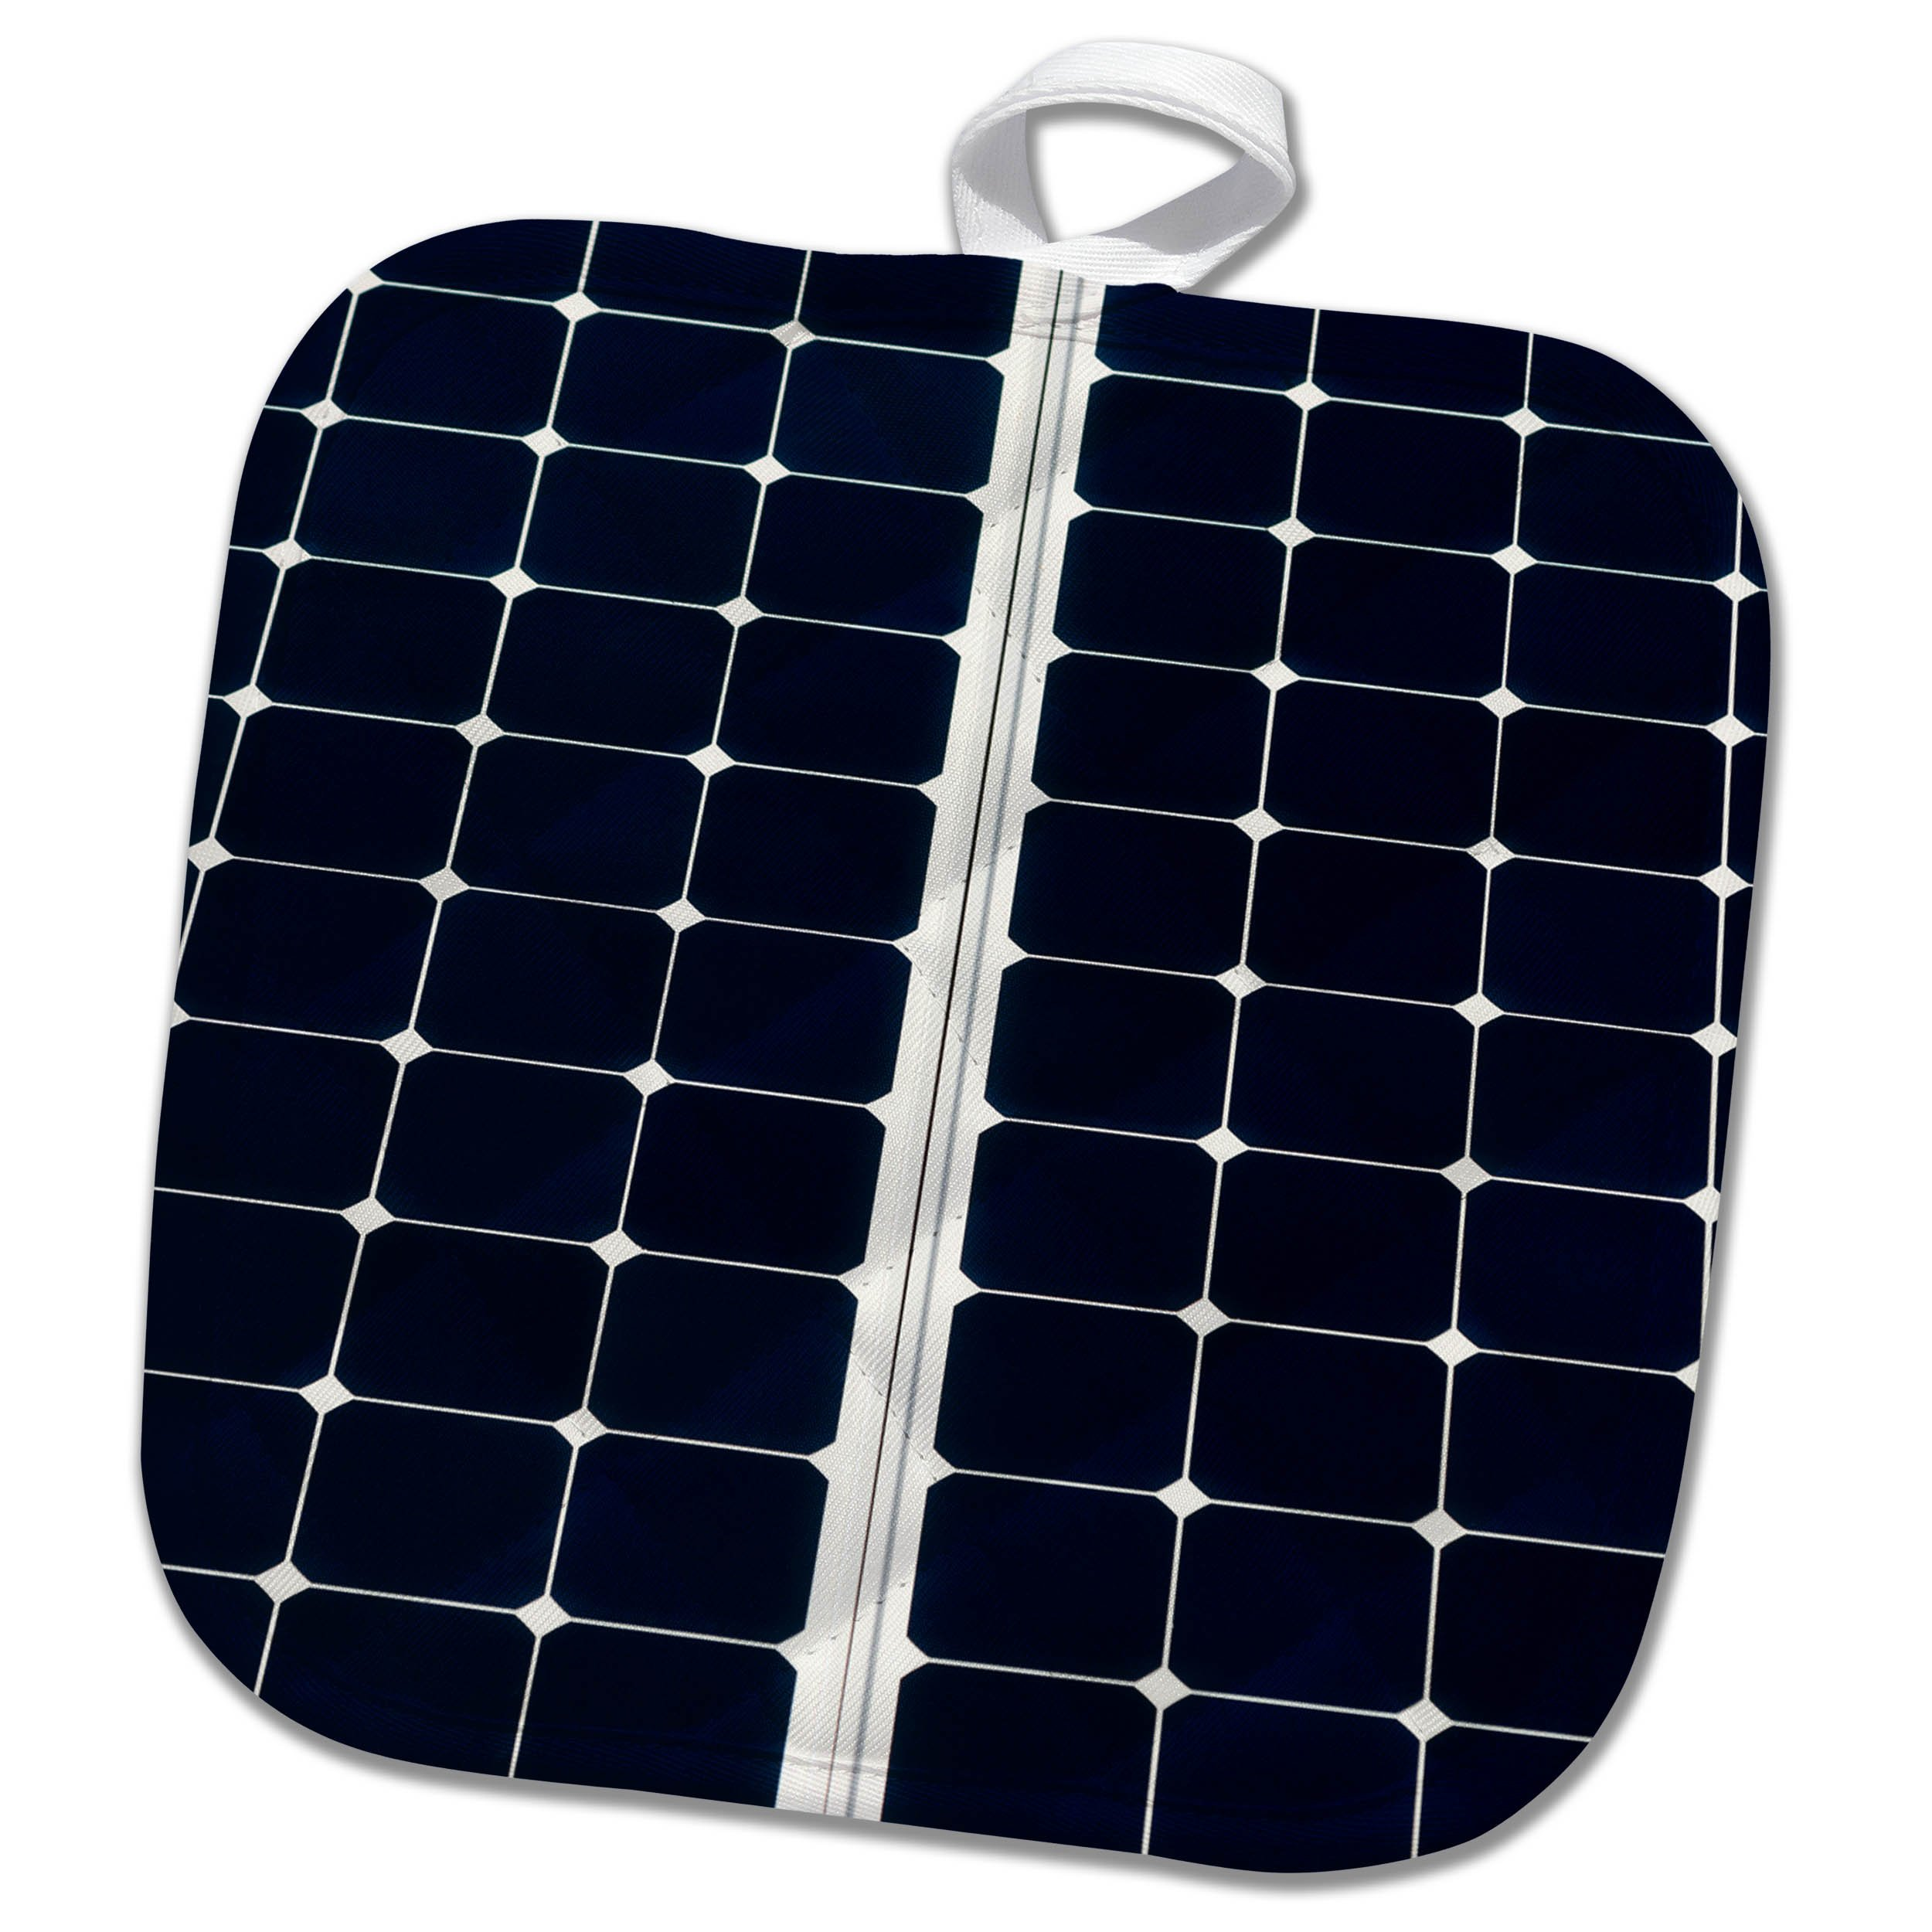 3dRose Alexis Photography - Objects - Dark blue solar power panel divided into two parts by white frame - 8x8 Potholder (phl_271344_1)